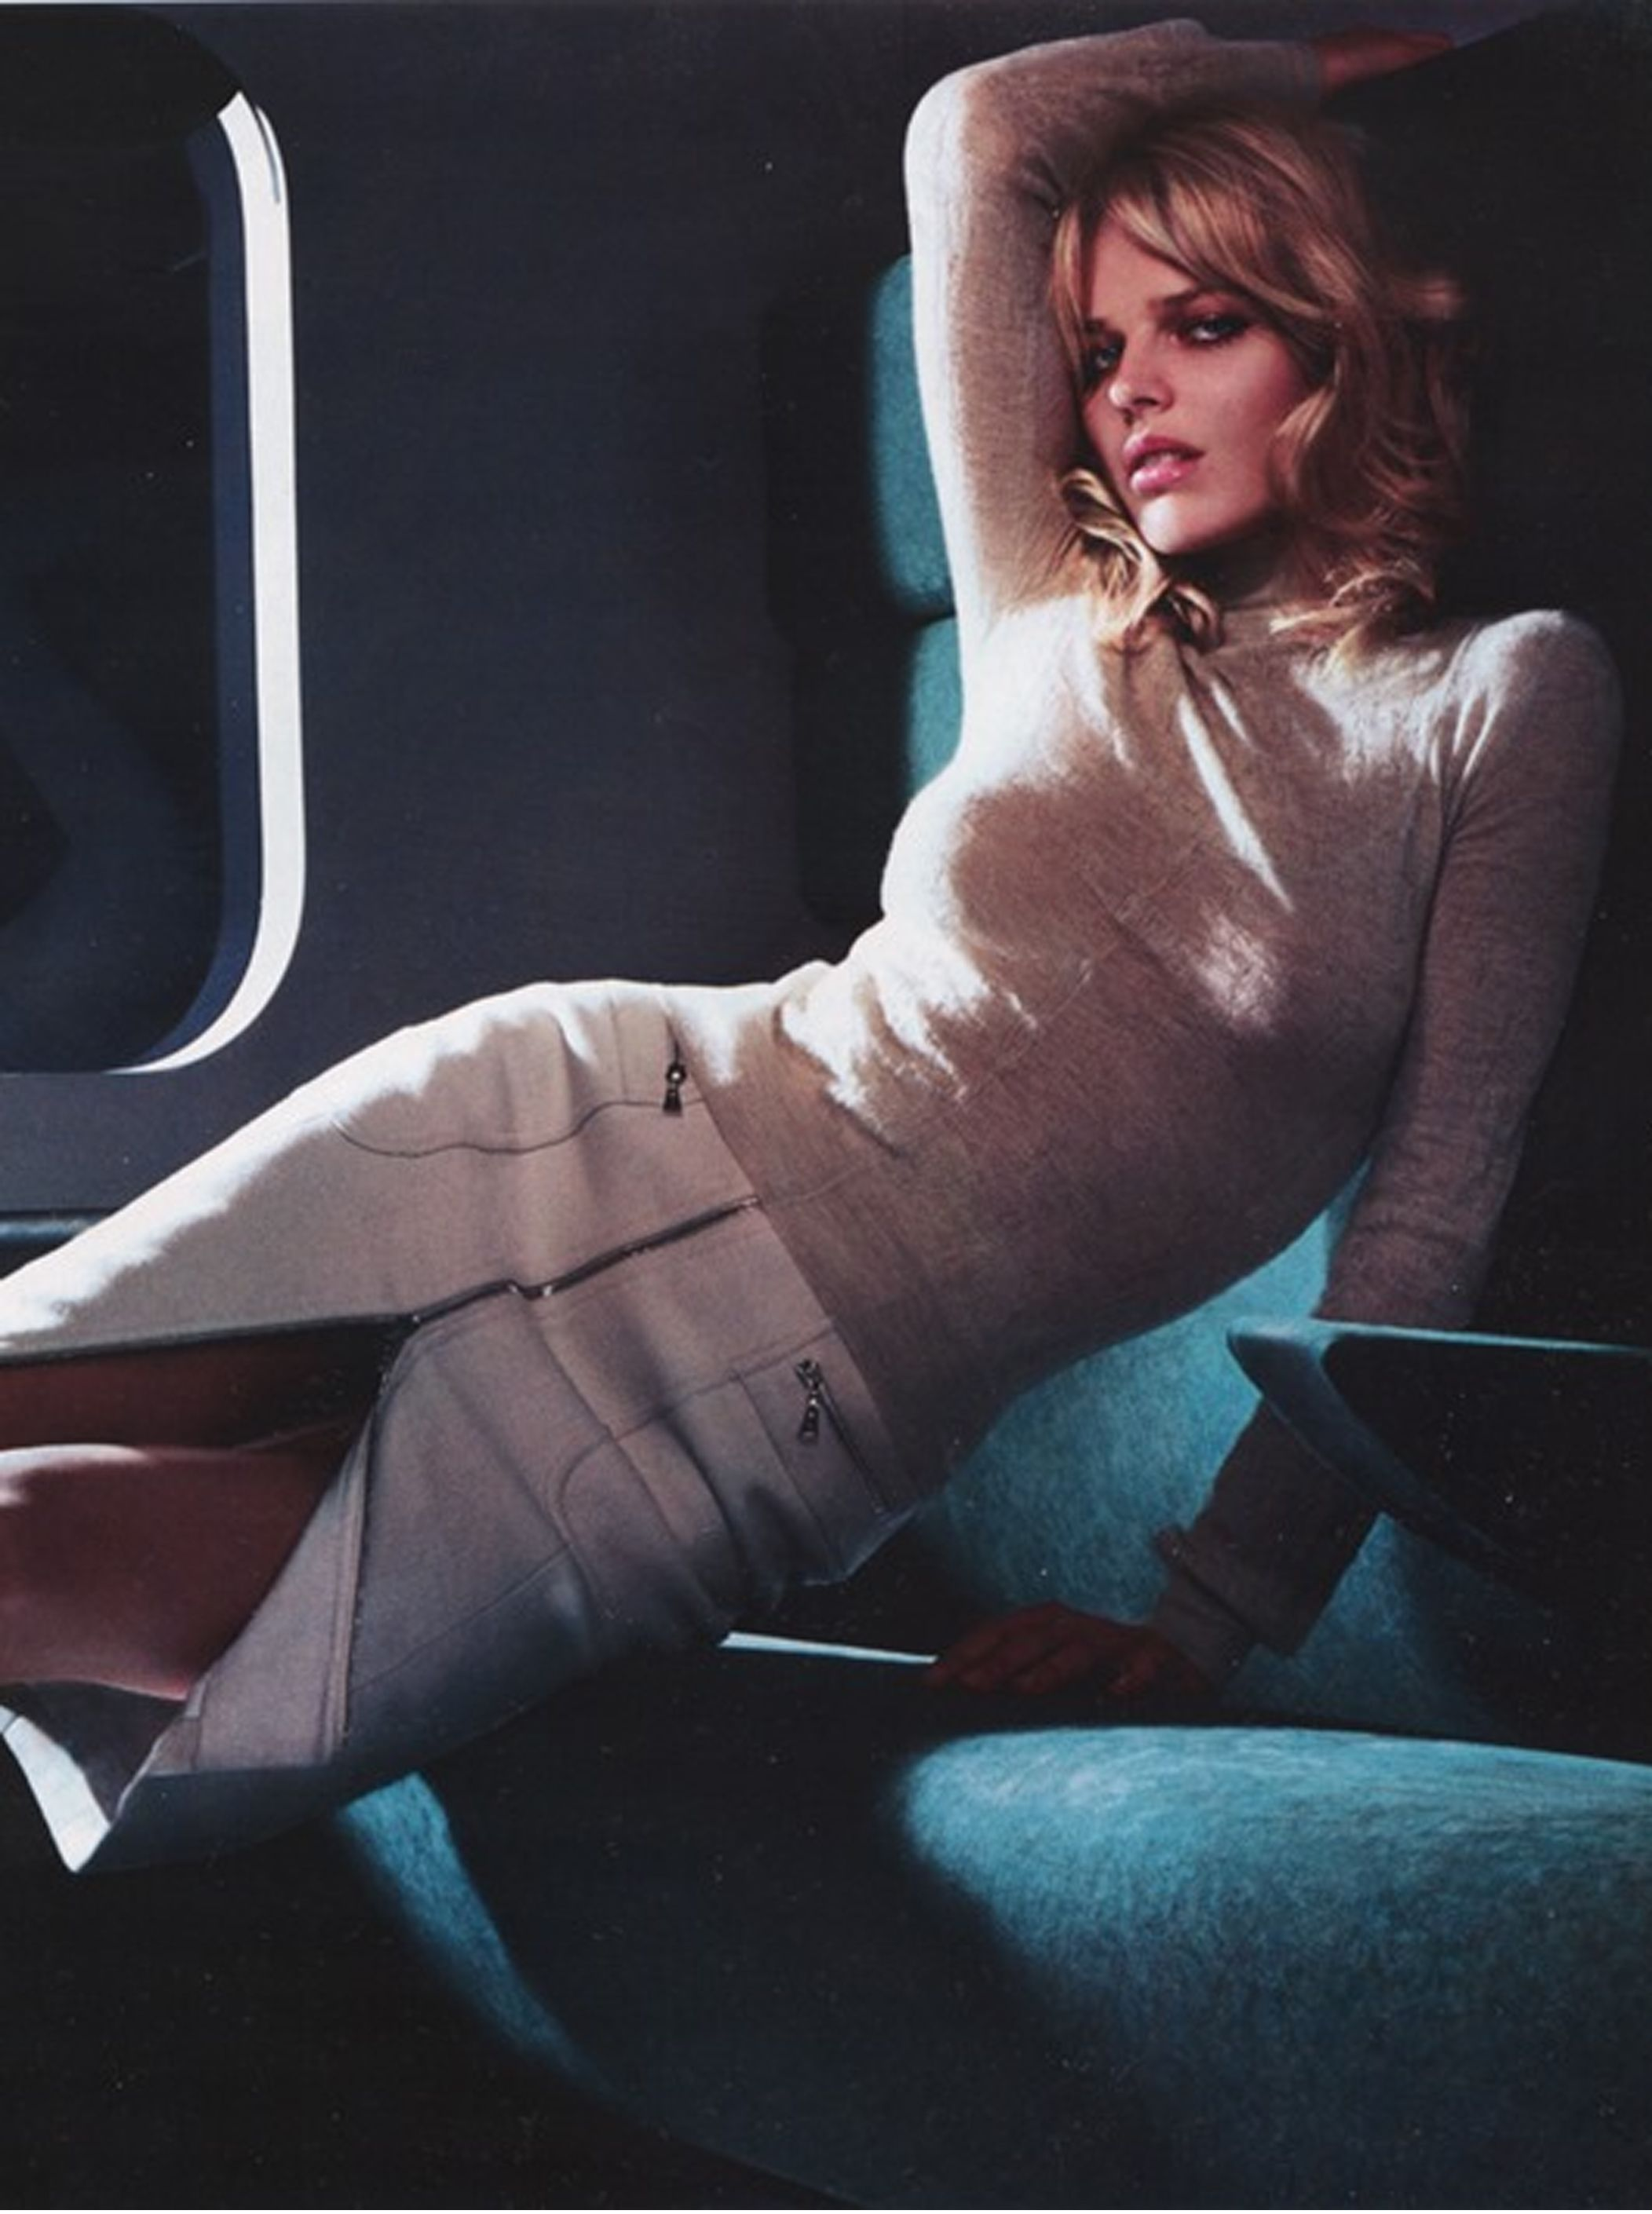 ec825b95170b Eva Herzigova by Mert Marcus for Louis Vuitton Fall Winter 2002   ...